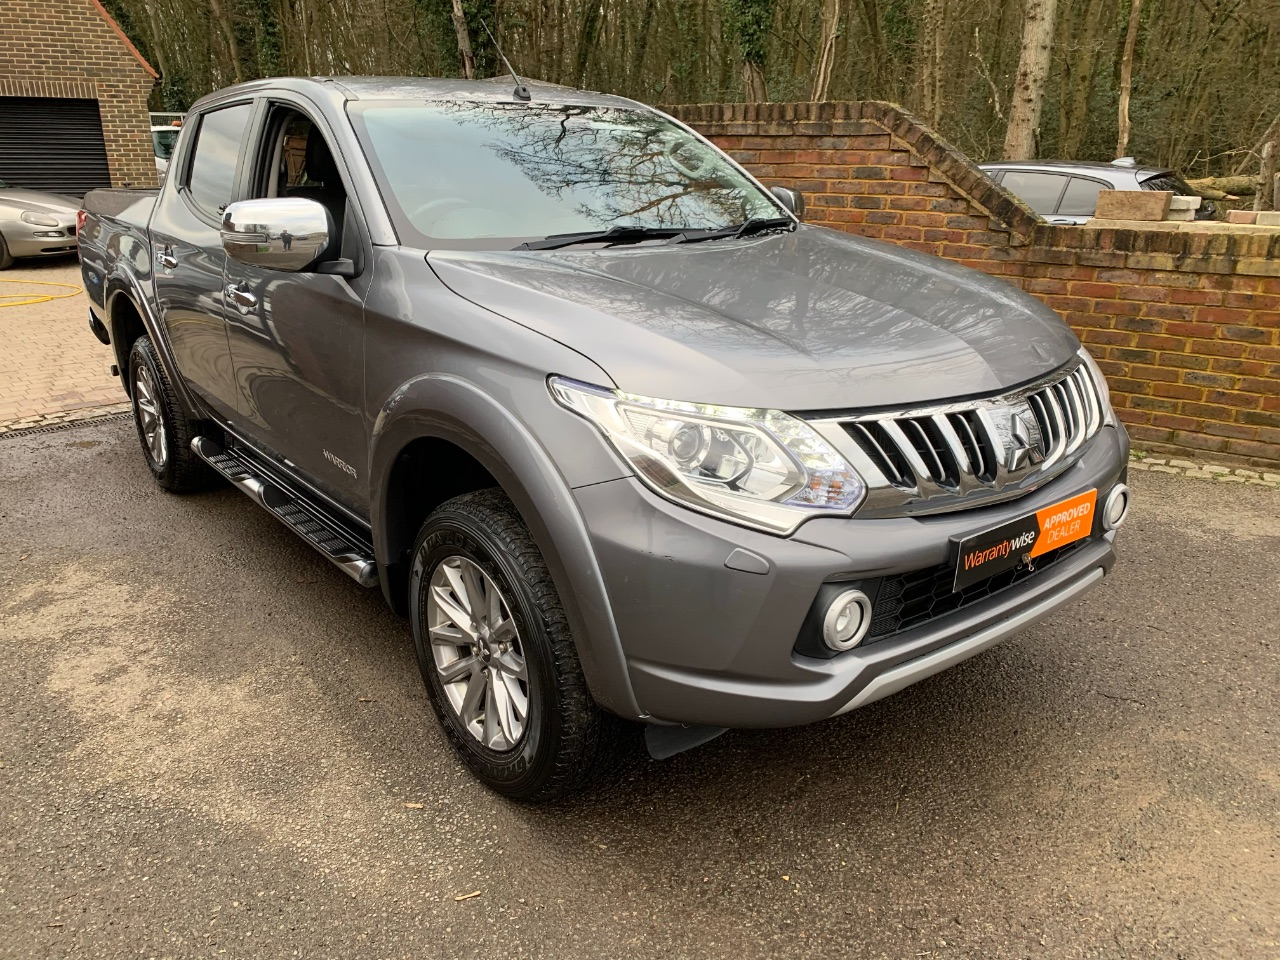 Mitsubishi L200 2.4 Double Cab DI-D 178 Warrior 4WD Auto + NO VAT Pick Up Diesel Grey at A Touch of Class Kingsnorth